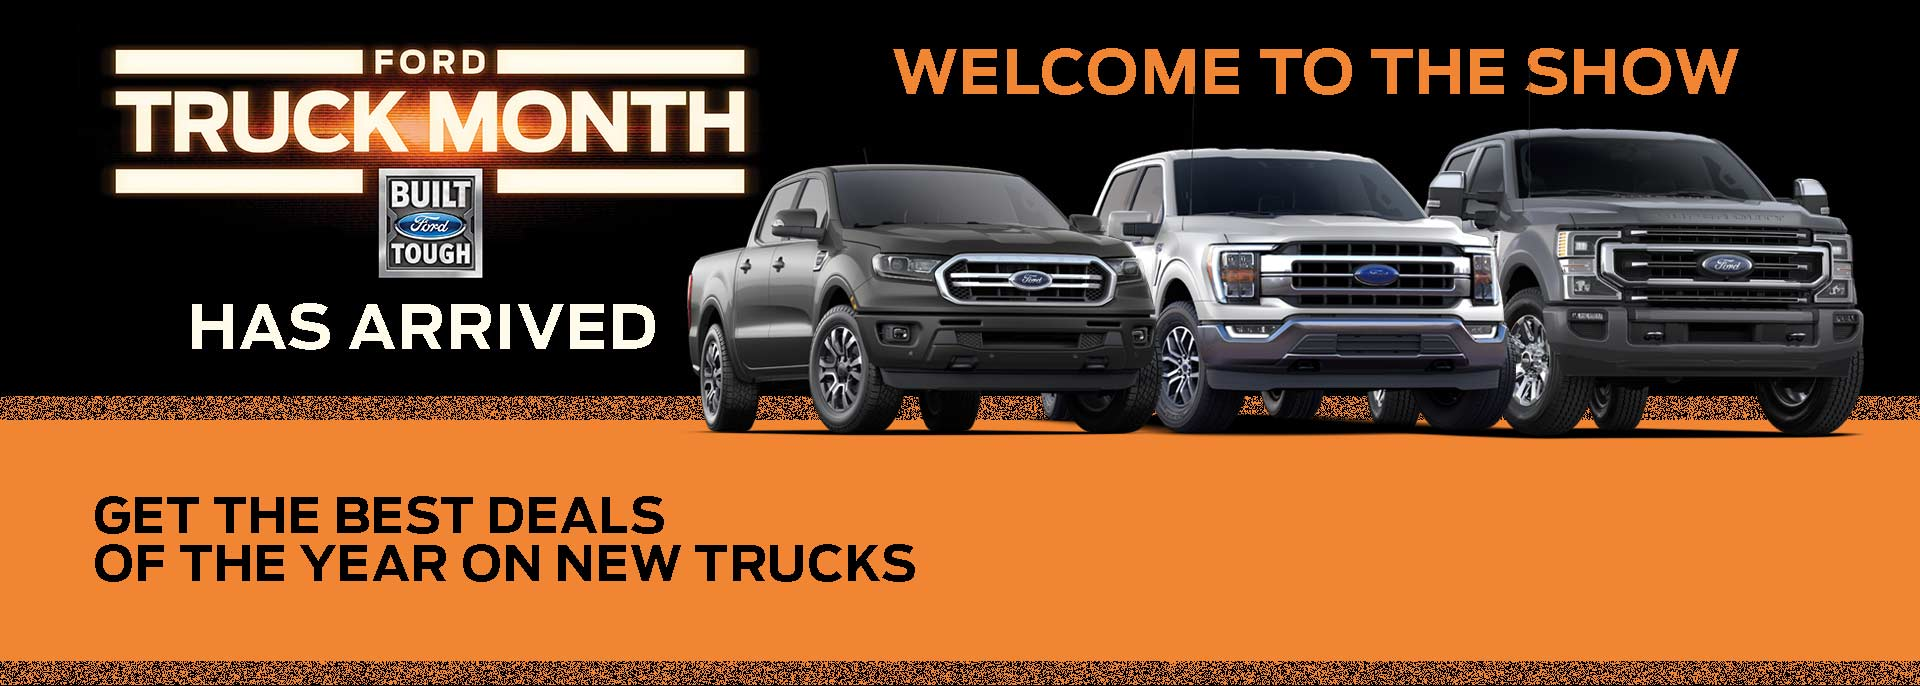 Doggett Ford Truck Month 2021 Best Deals -desktop